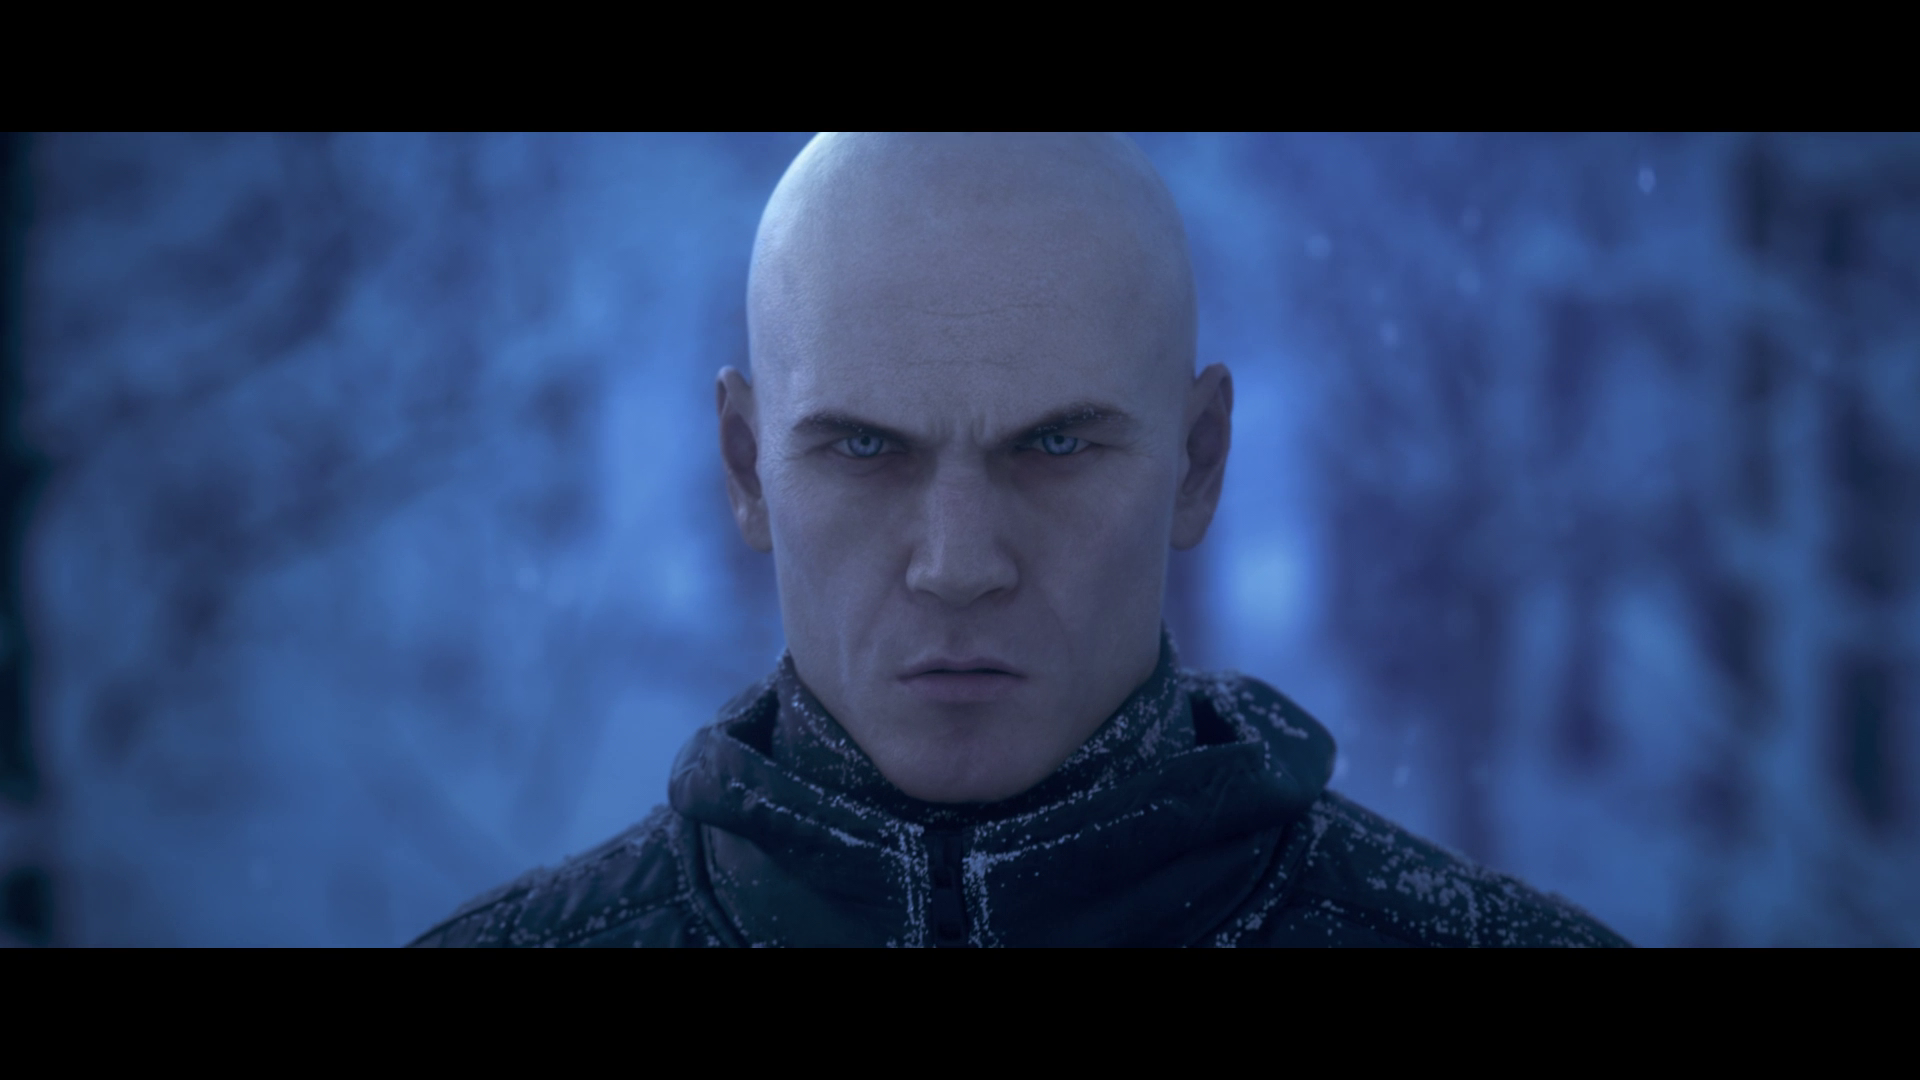 HITMAN-Announcement-image(2)